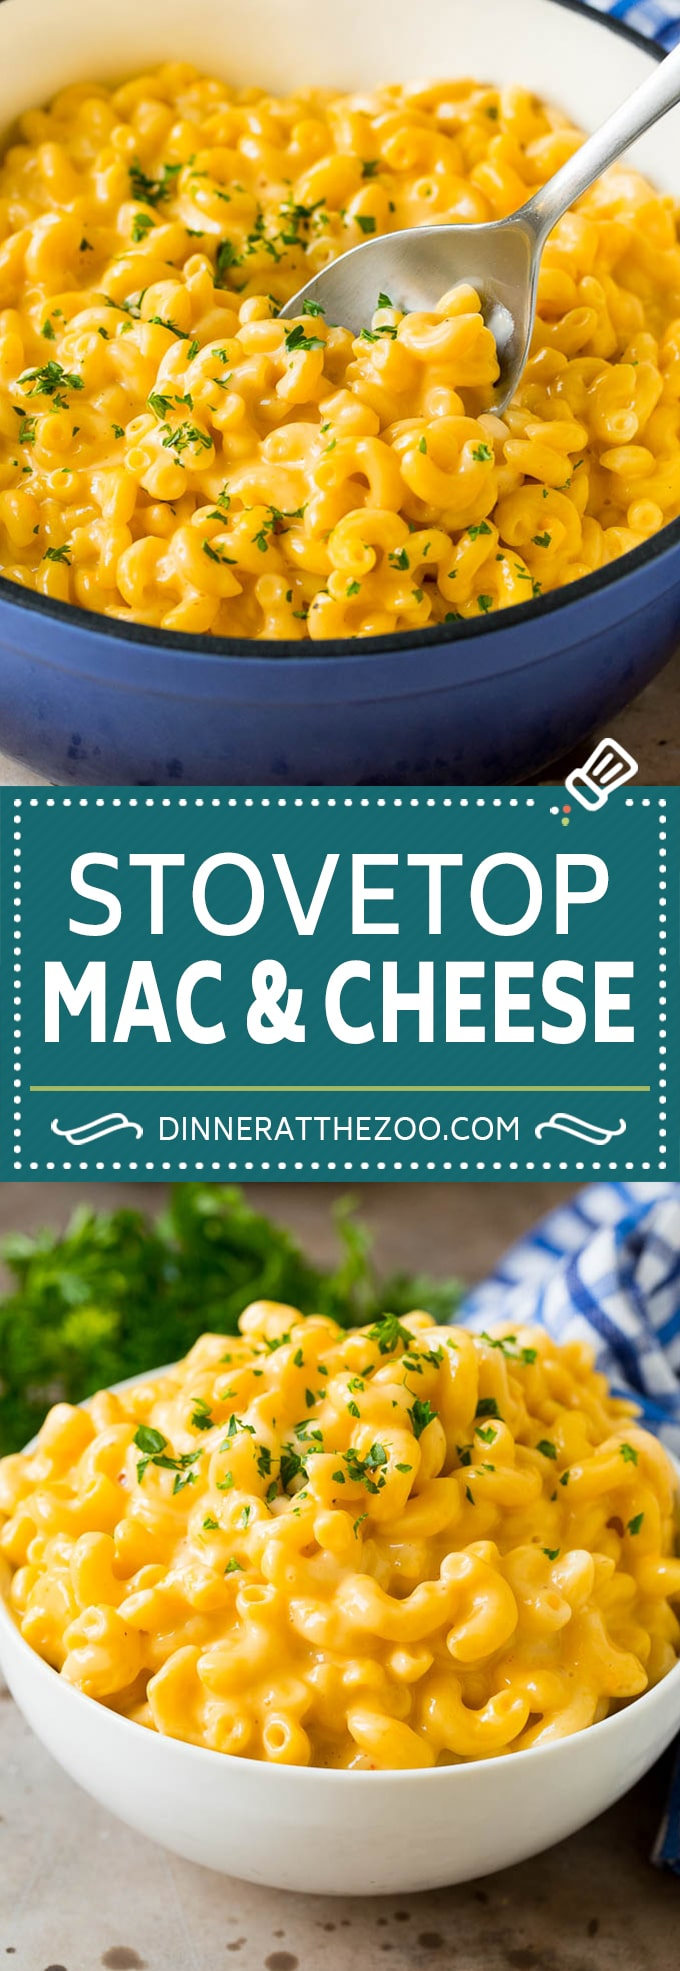 This Stovetop Mac And Cheese Is A One Pot Dish Of Tender Macaroni Simmered In An Ultra Creamy Yummy Pasta Recipes Best Macaroni And Cheese Best Dinner Recipes